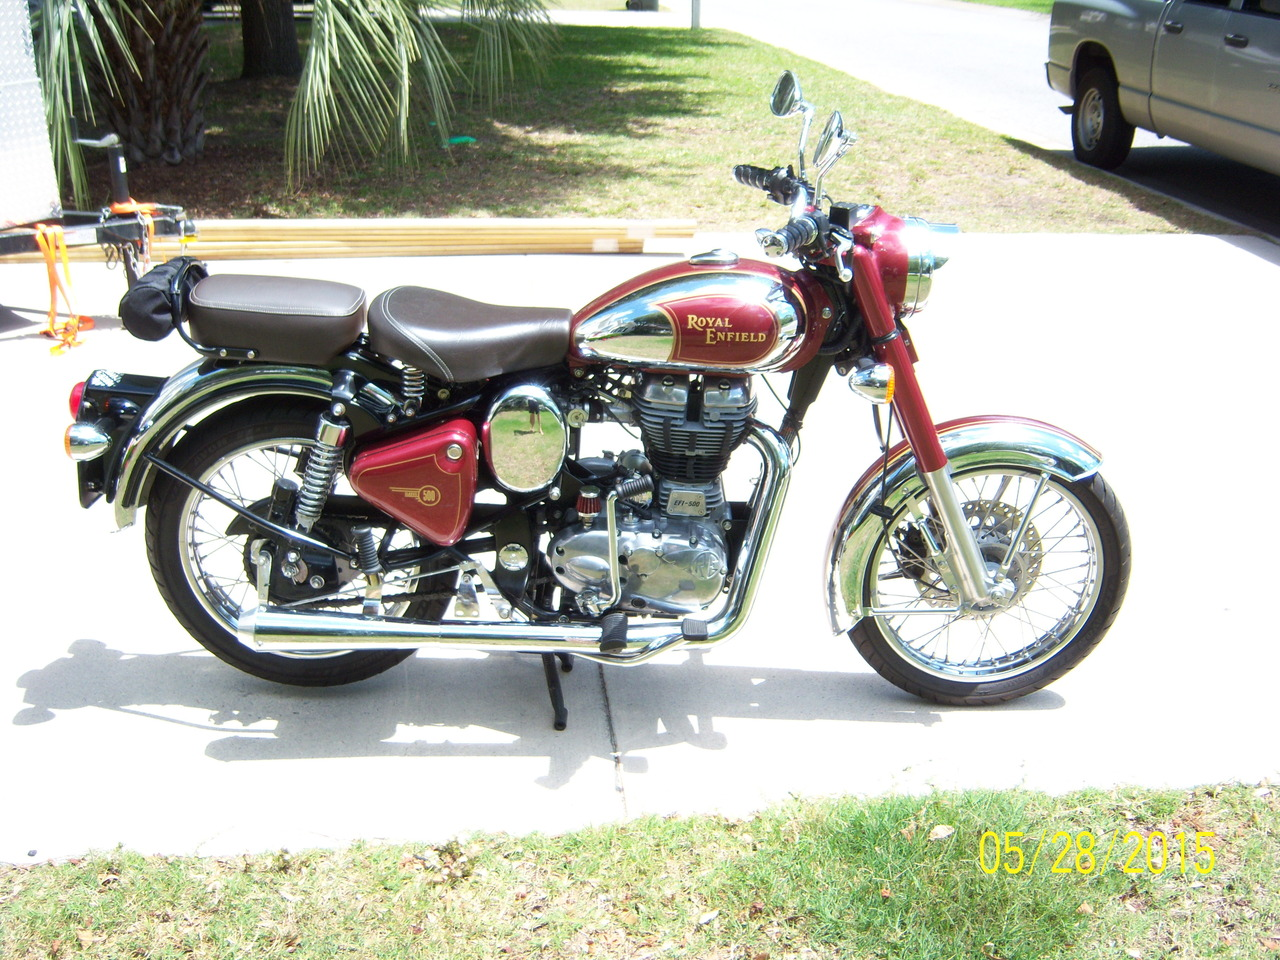 2012 Royal Enfield Bullet C5 CHROME (EFI) LIMITIED EDITION, motorcycle listing